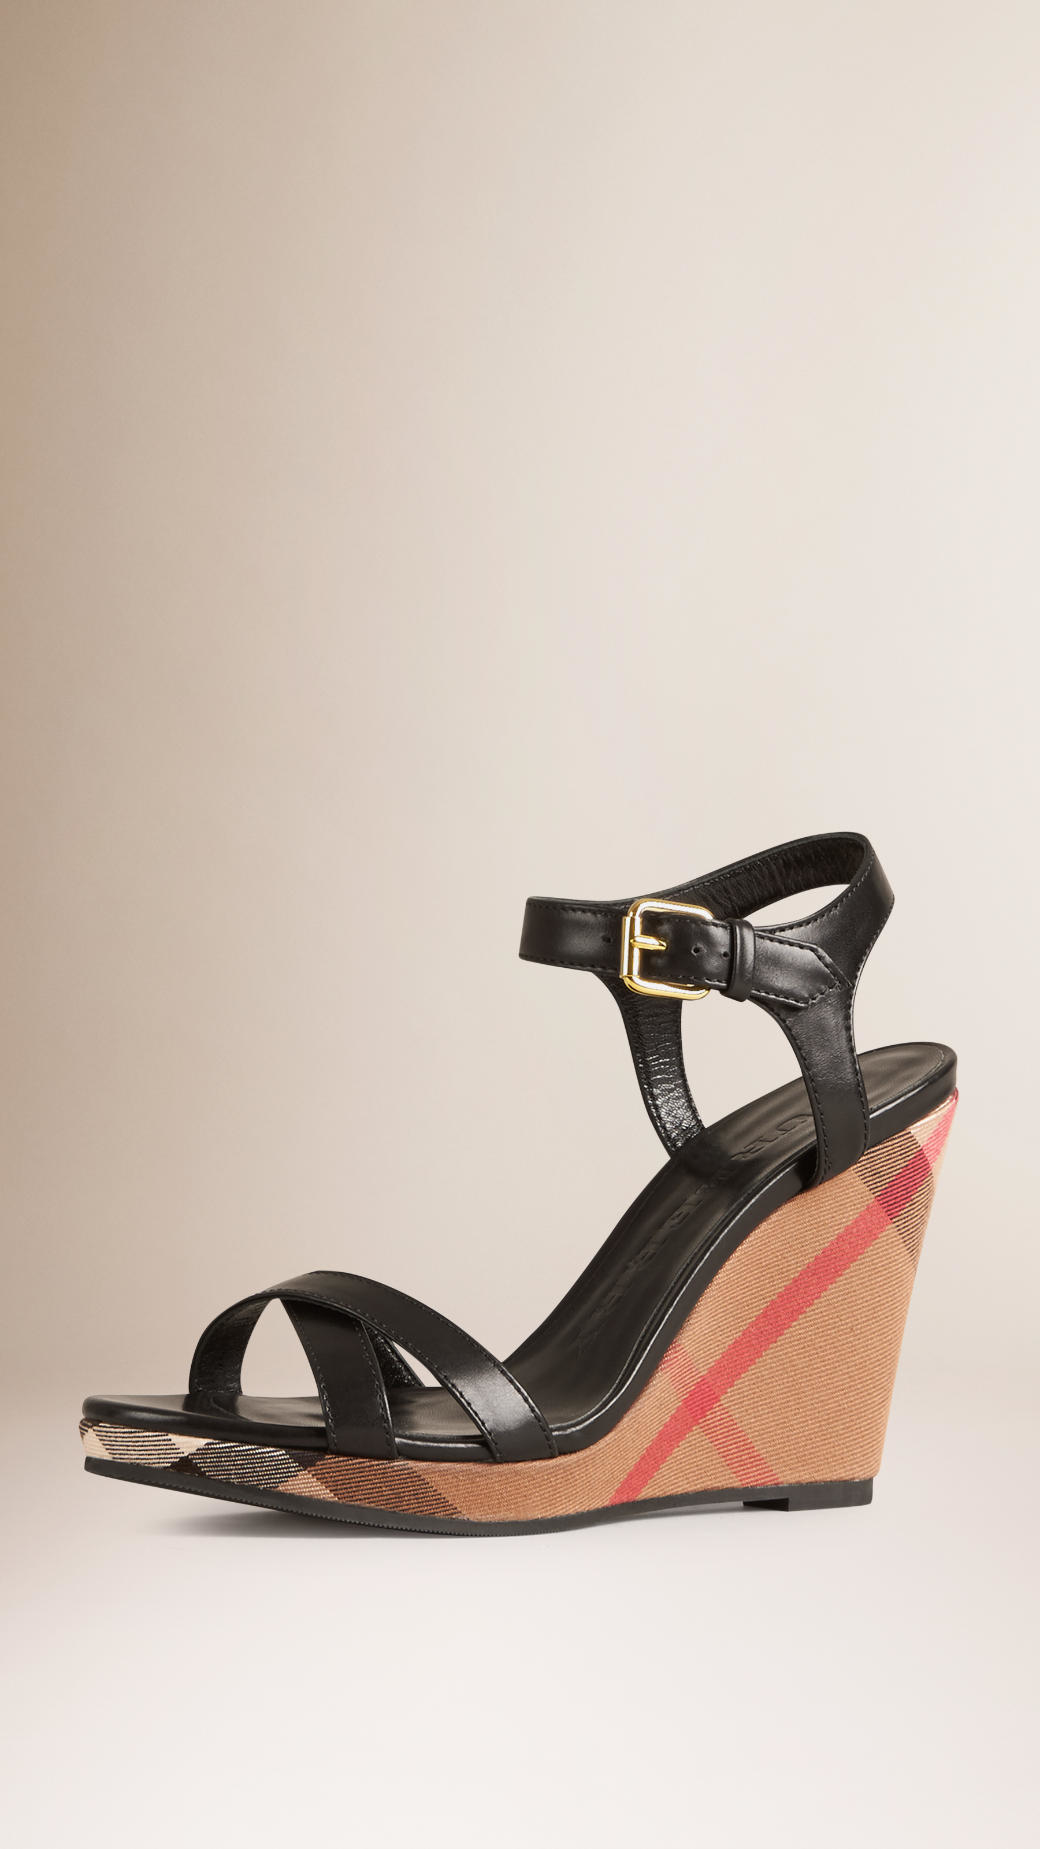 burberry house check leather wedge sandals in black lyst